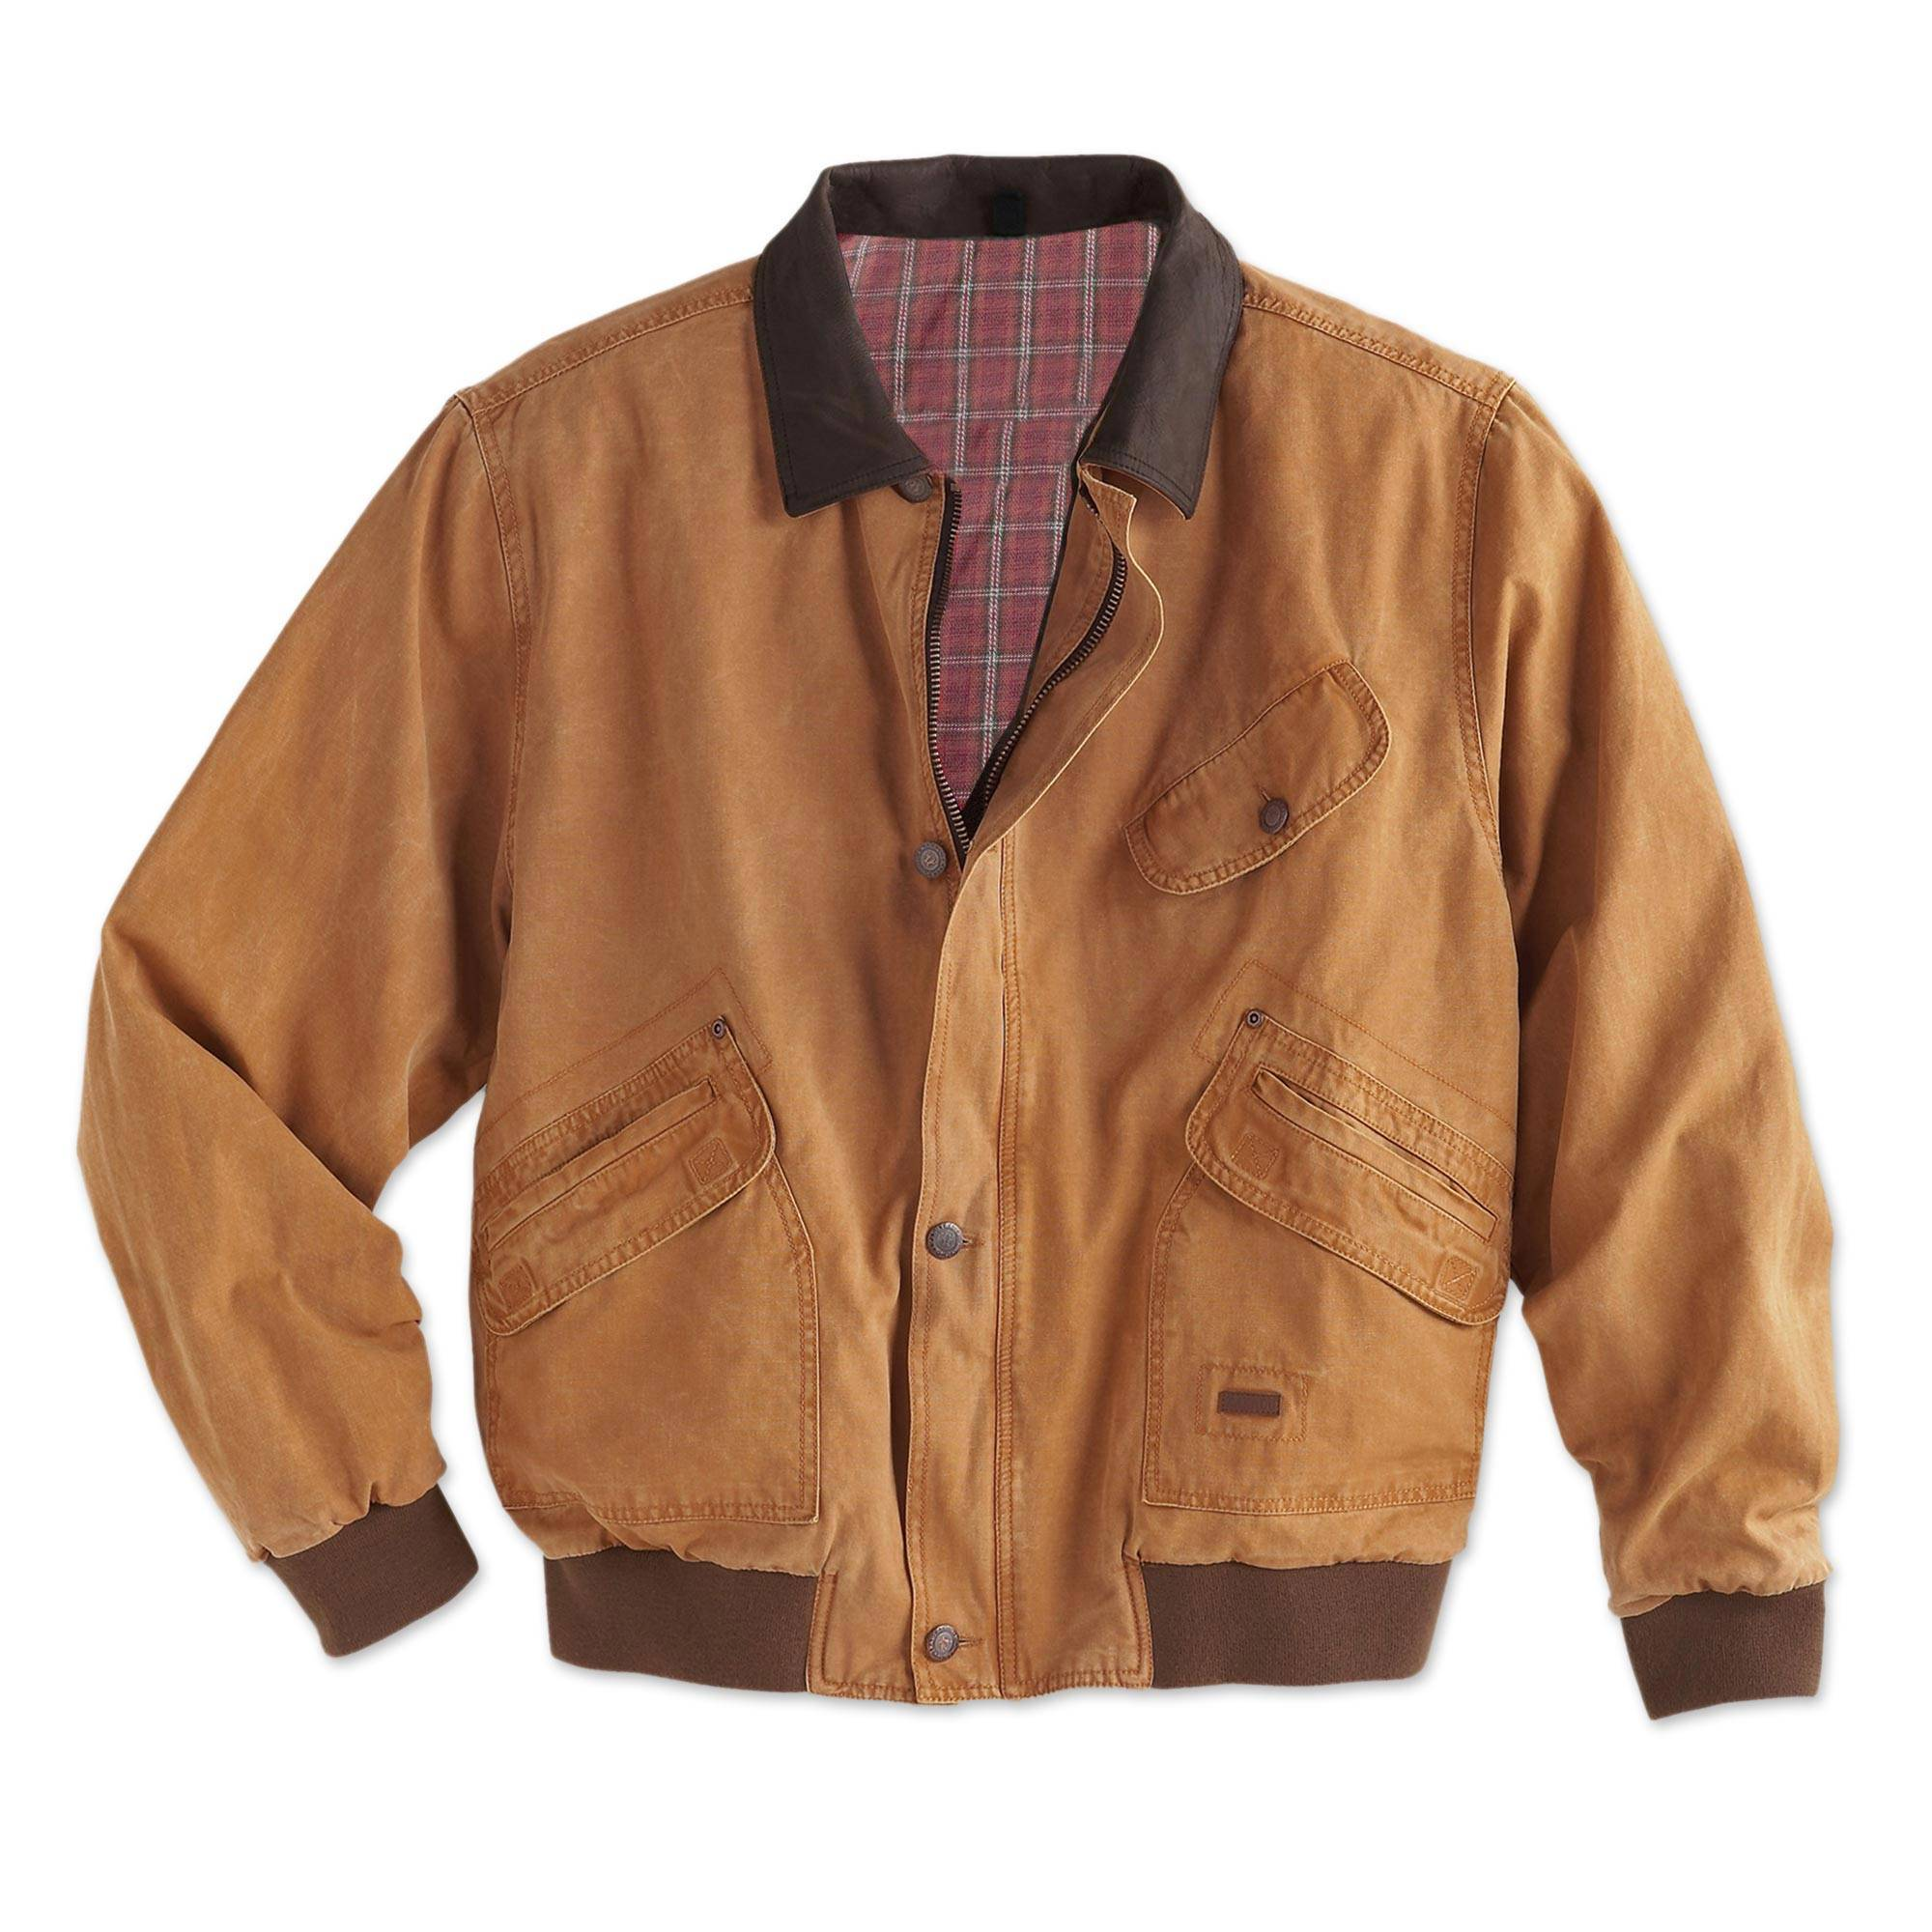 fitted jacket people rugged boutique pin rug and jackets metallic bronze free leather at clothing